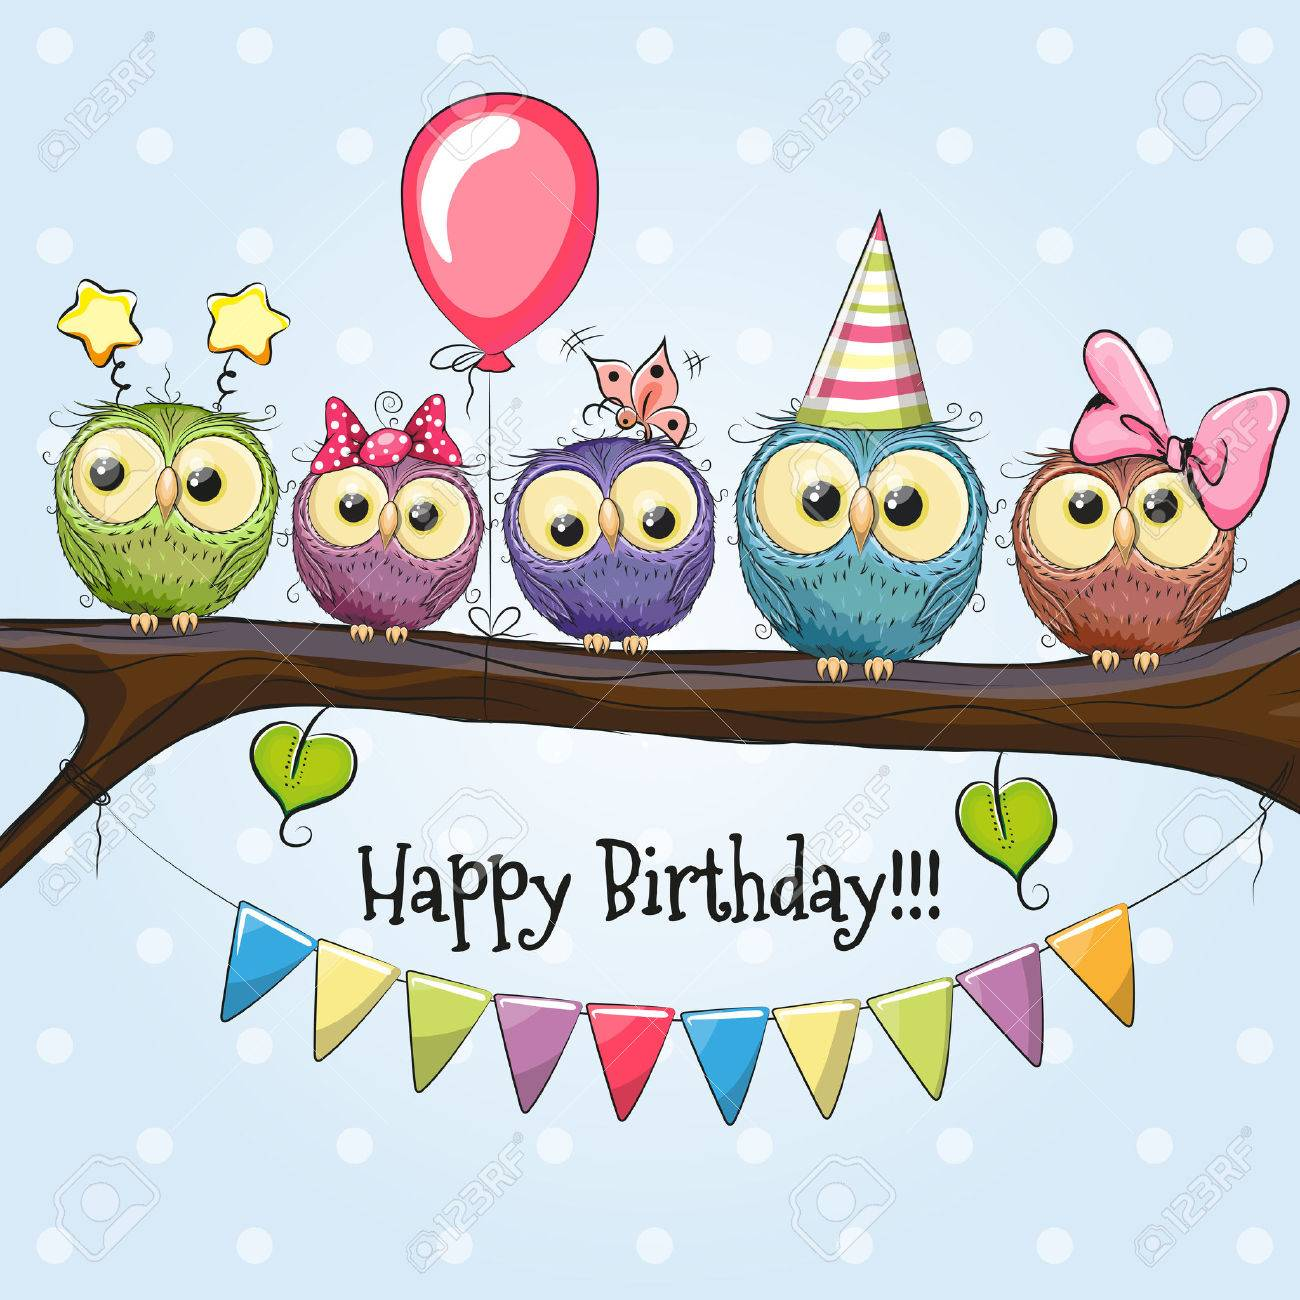 Five Owls on a brunch with balloon and bonnets - 60844679